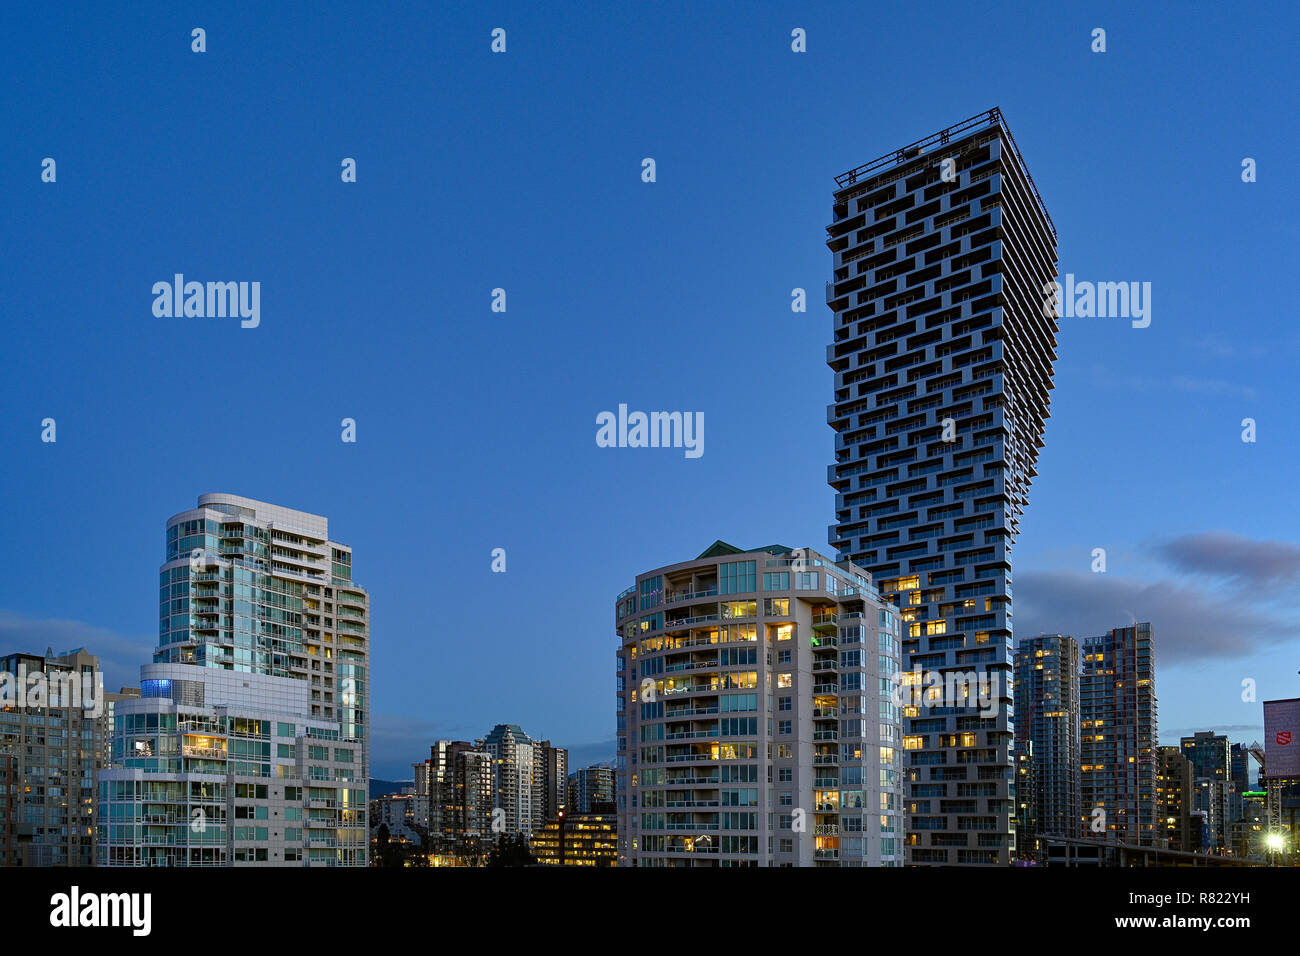 Unusual High rise condo building, Vancouver House,  Bjarke Ingels Group architects, Vancouver, British Columbia, Canada. - Stock Image